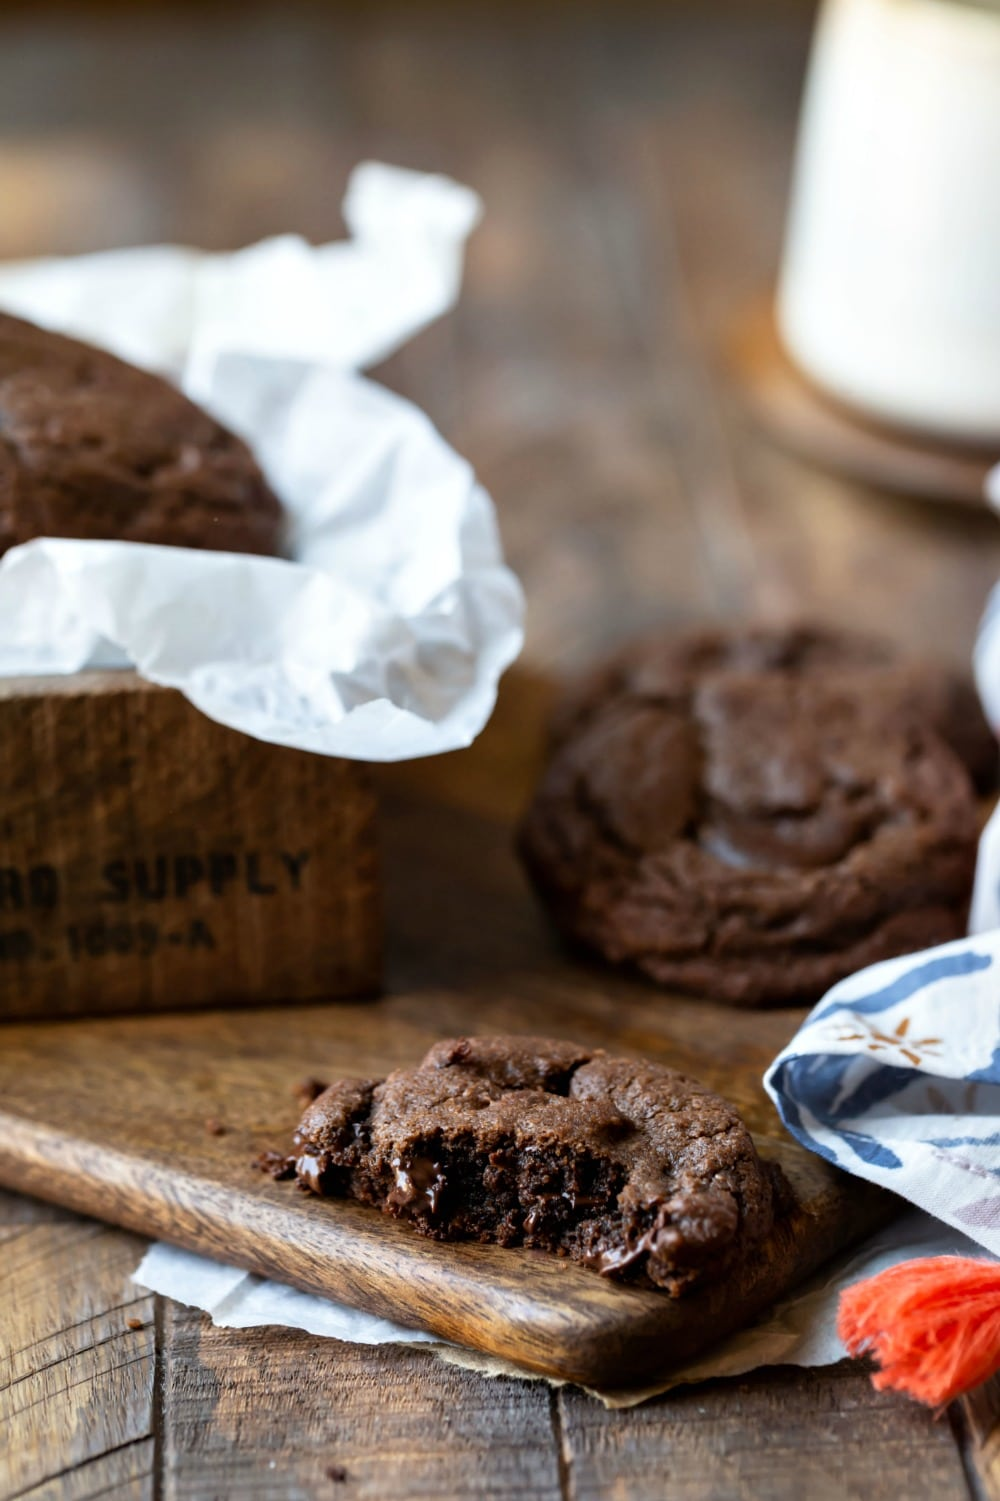 Chocolate Chocolate Chip Cookies next to a print napkin